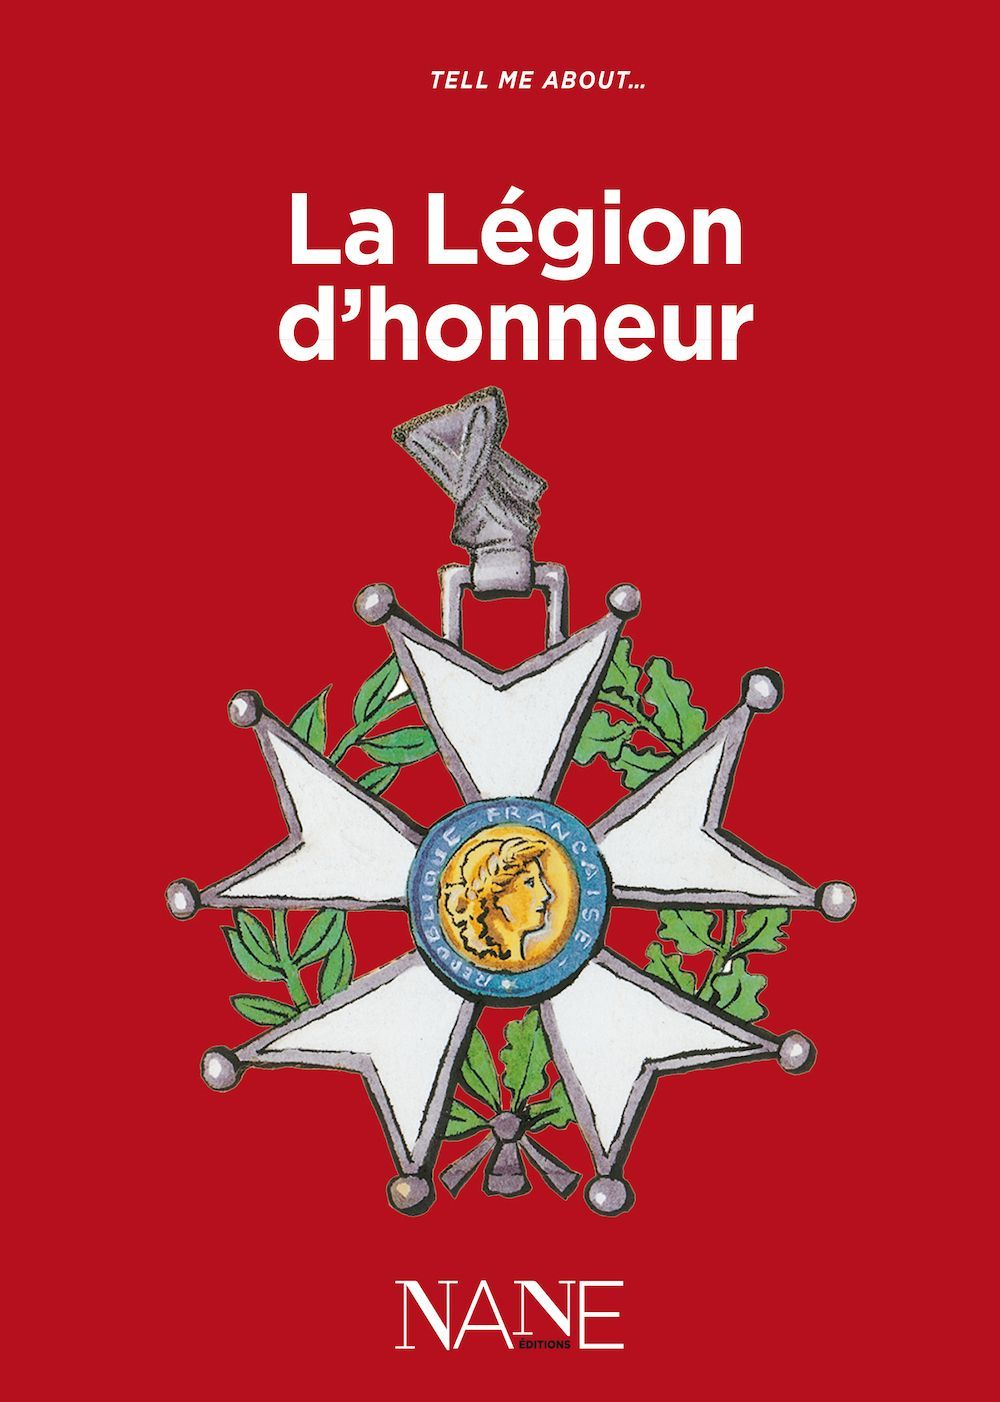 TELL ME ABOUT LA LEGION D'HONNEUR